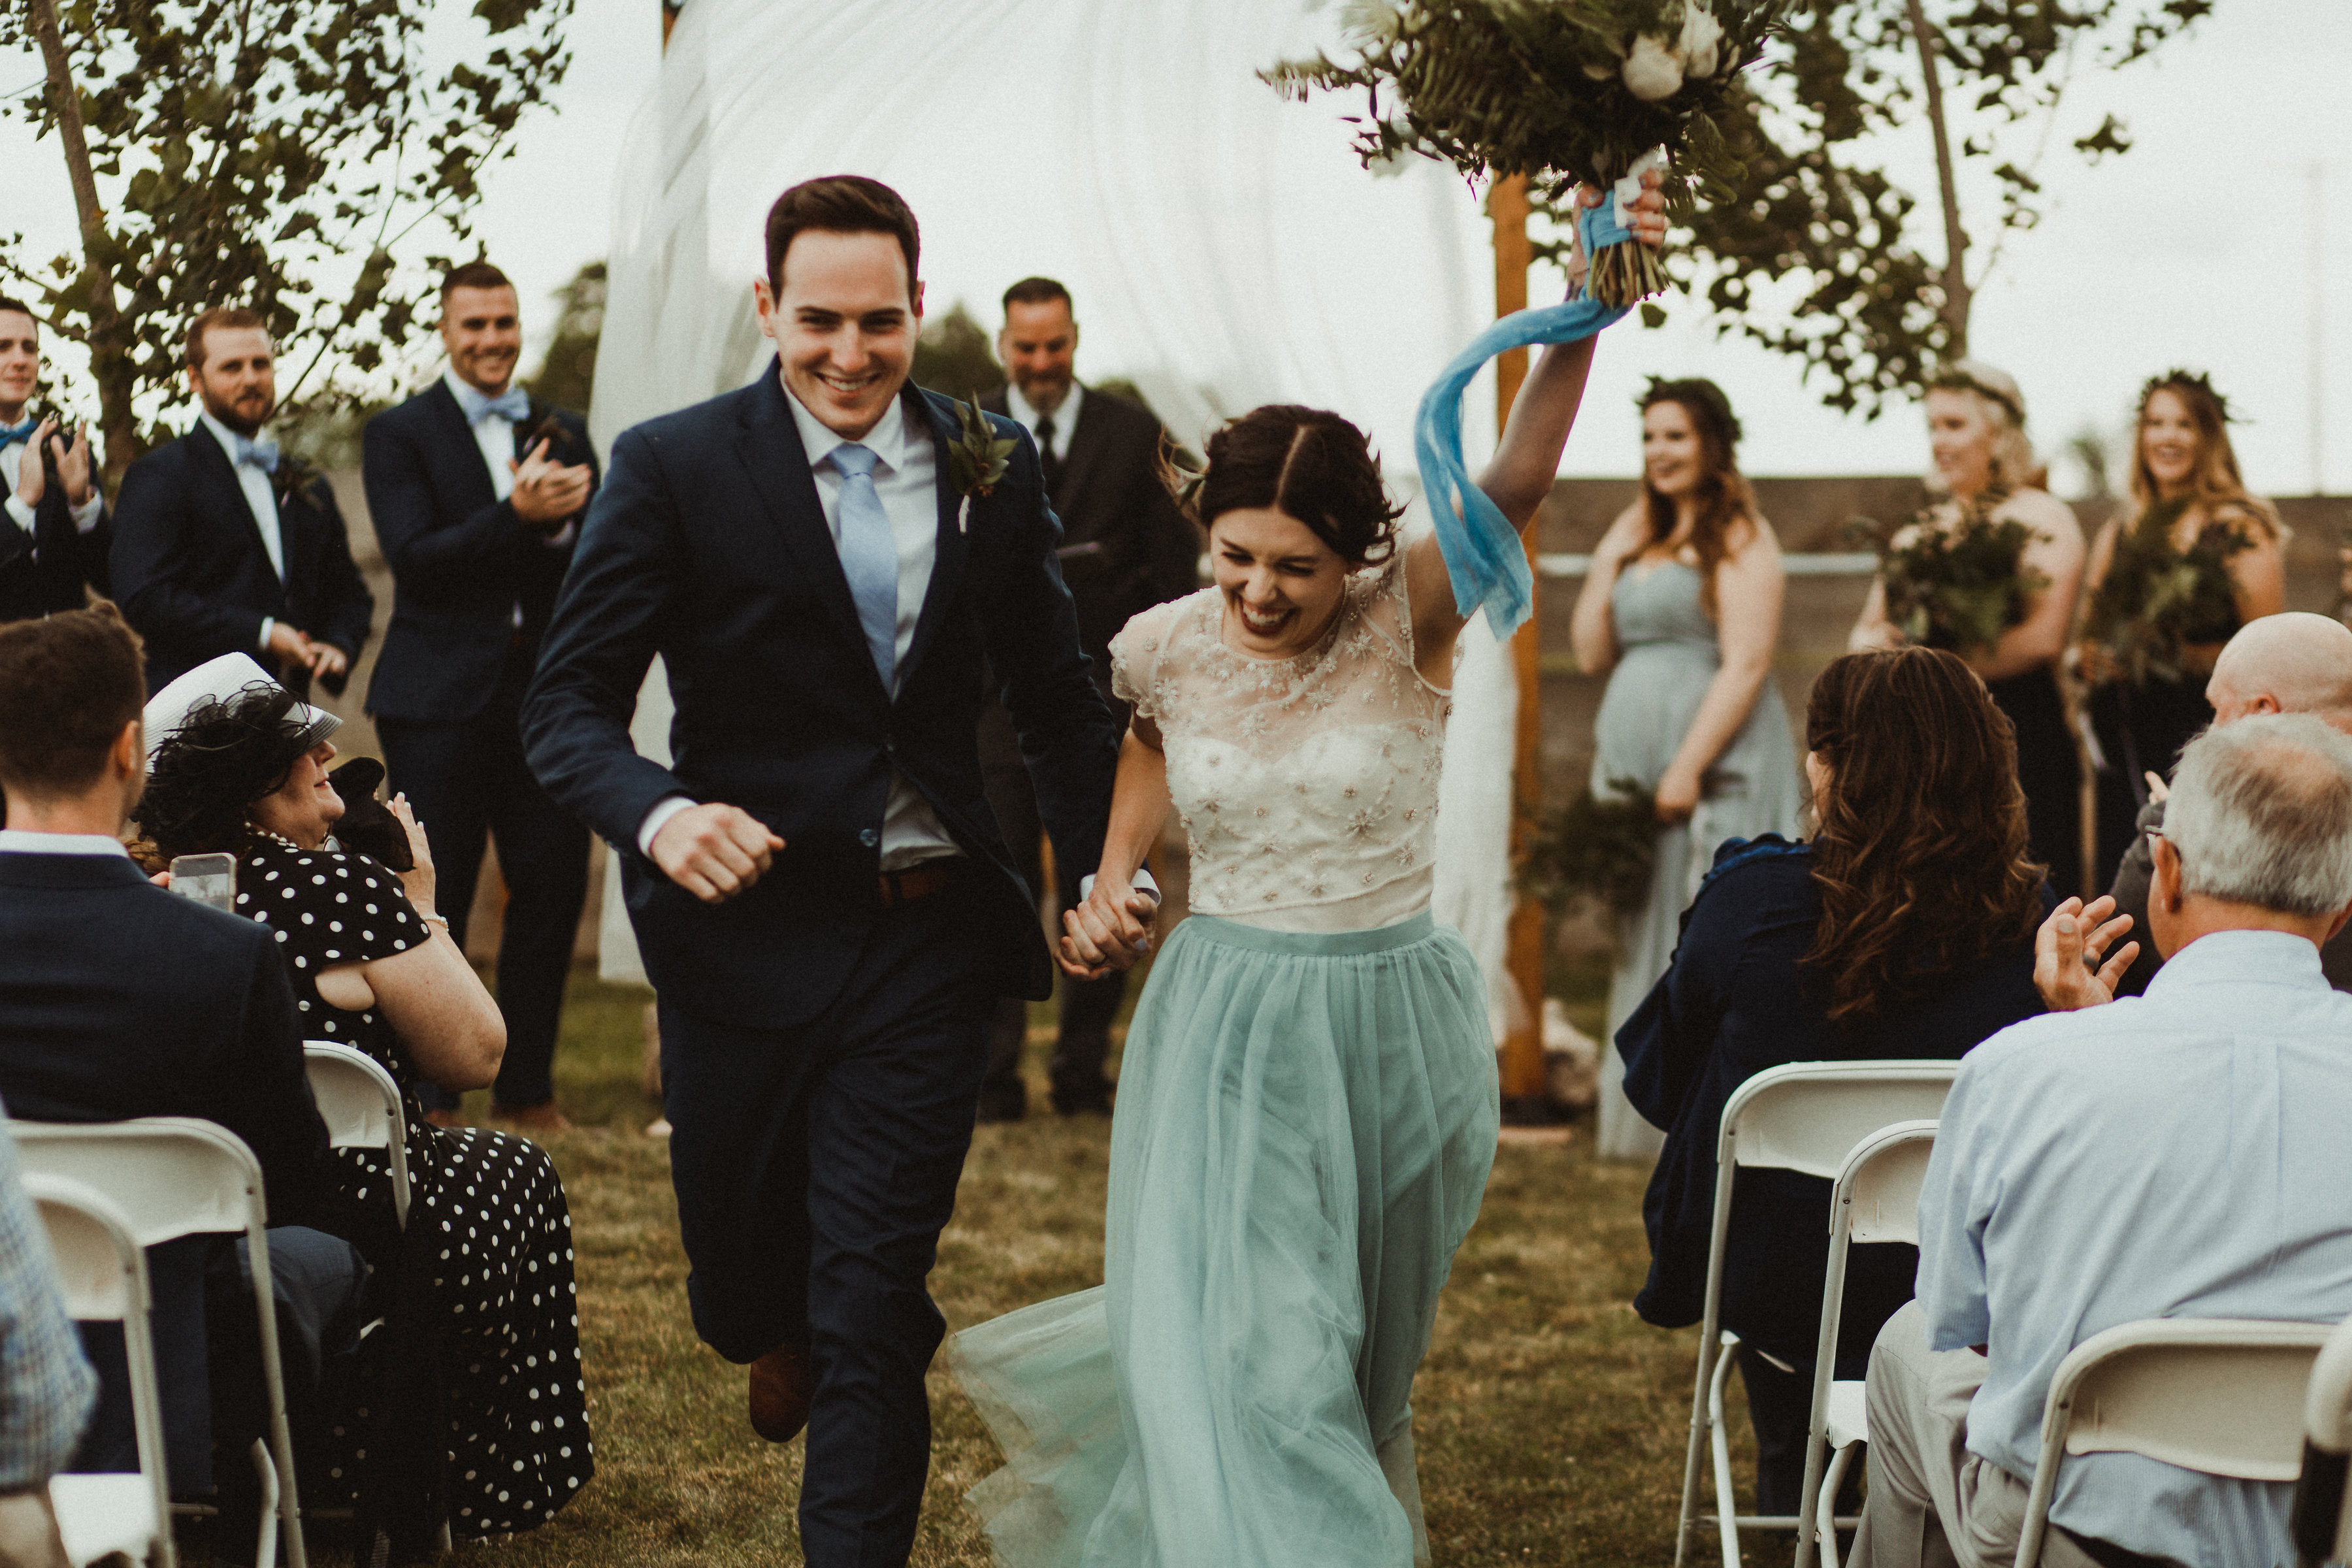 Bride in tulle and groom dance down the aisle celebrating their love